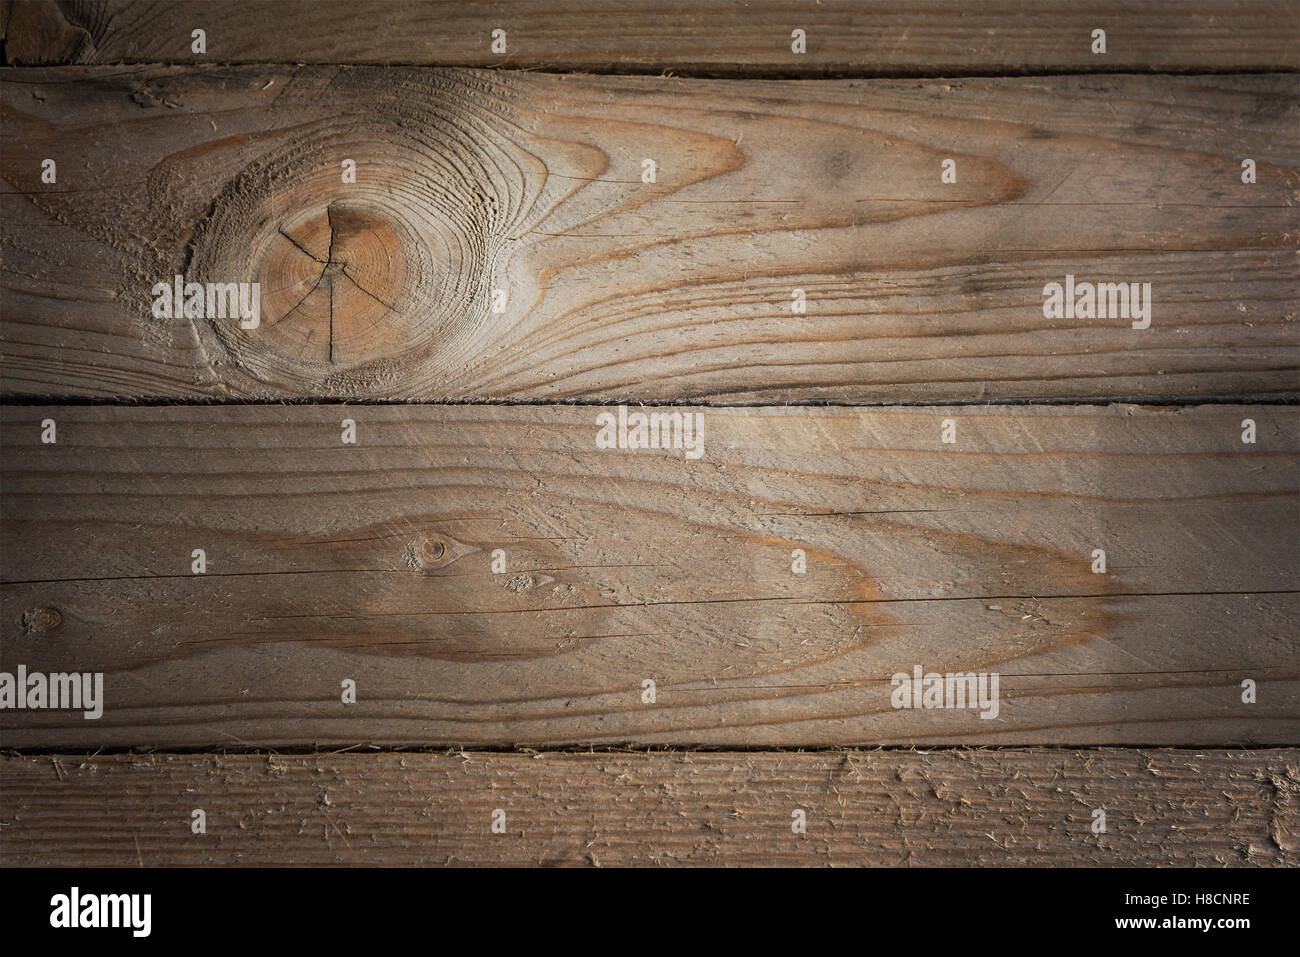 Image of natural wood planks. Background with copy space. - Stock Image